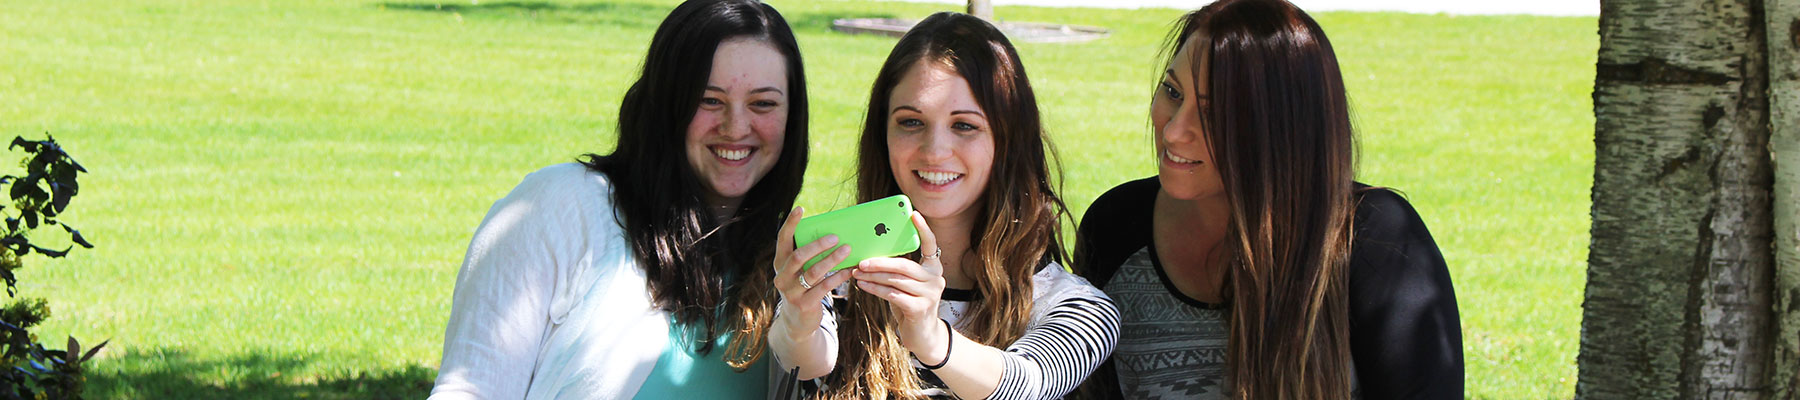 three female students taking selfie